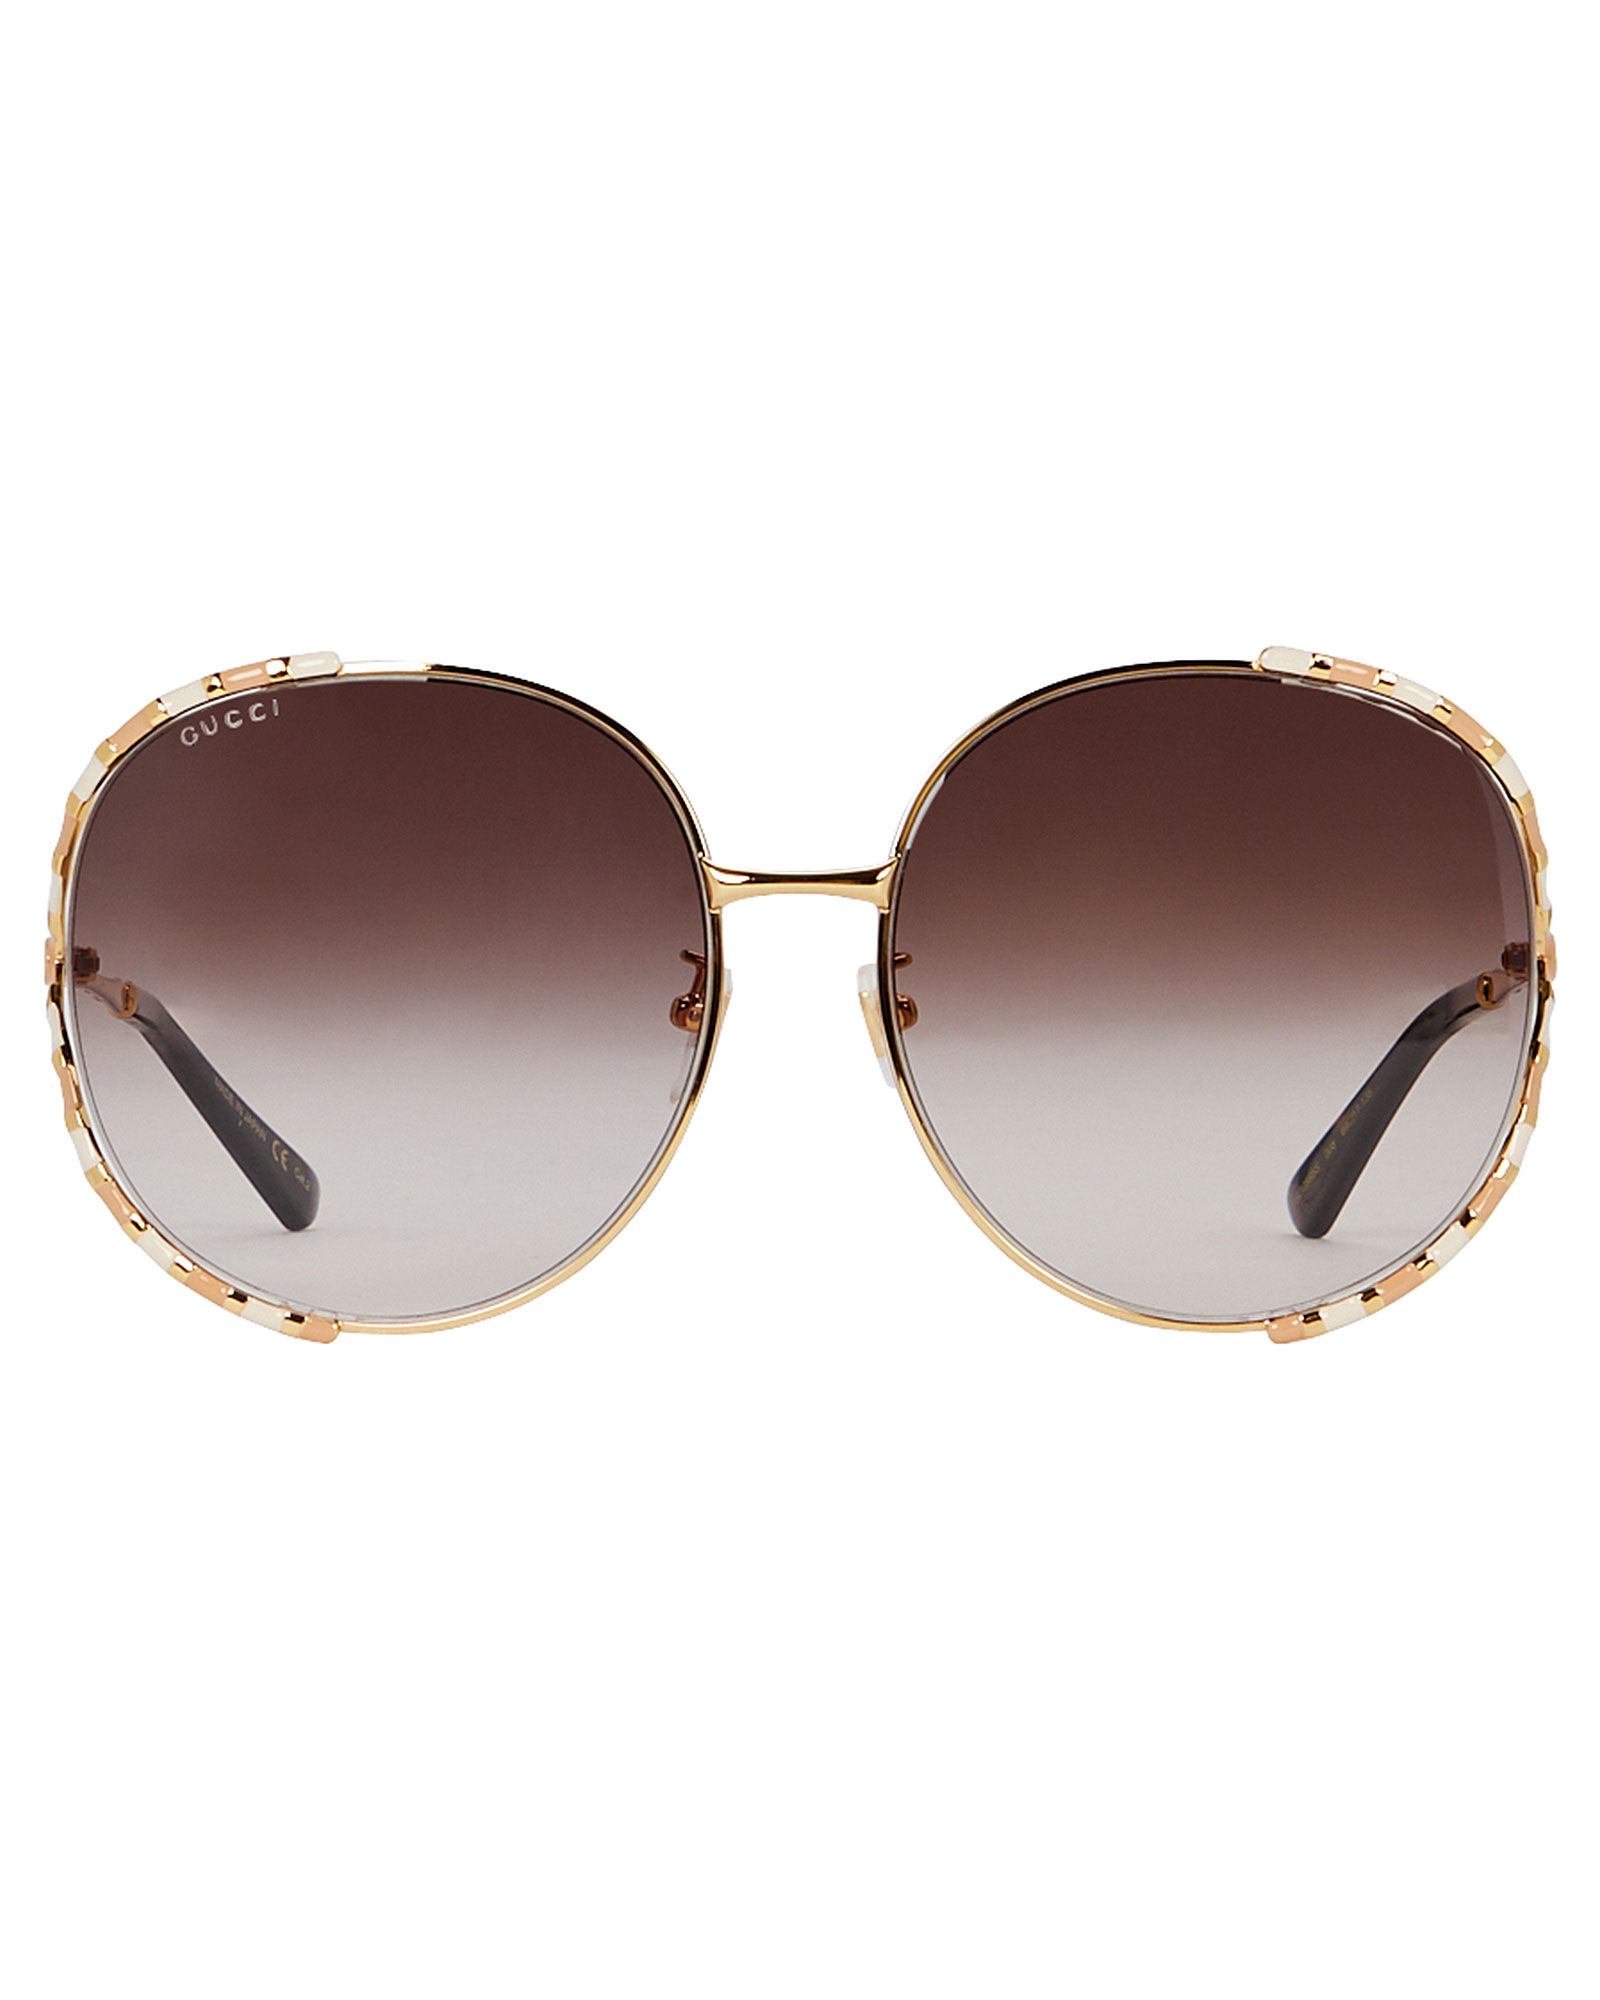 Oversized Rounded Sunglasses, GOLD, hi-res